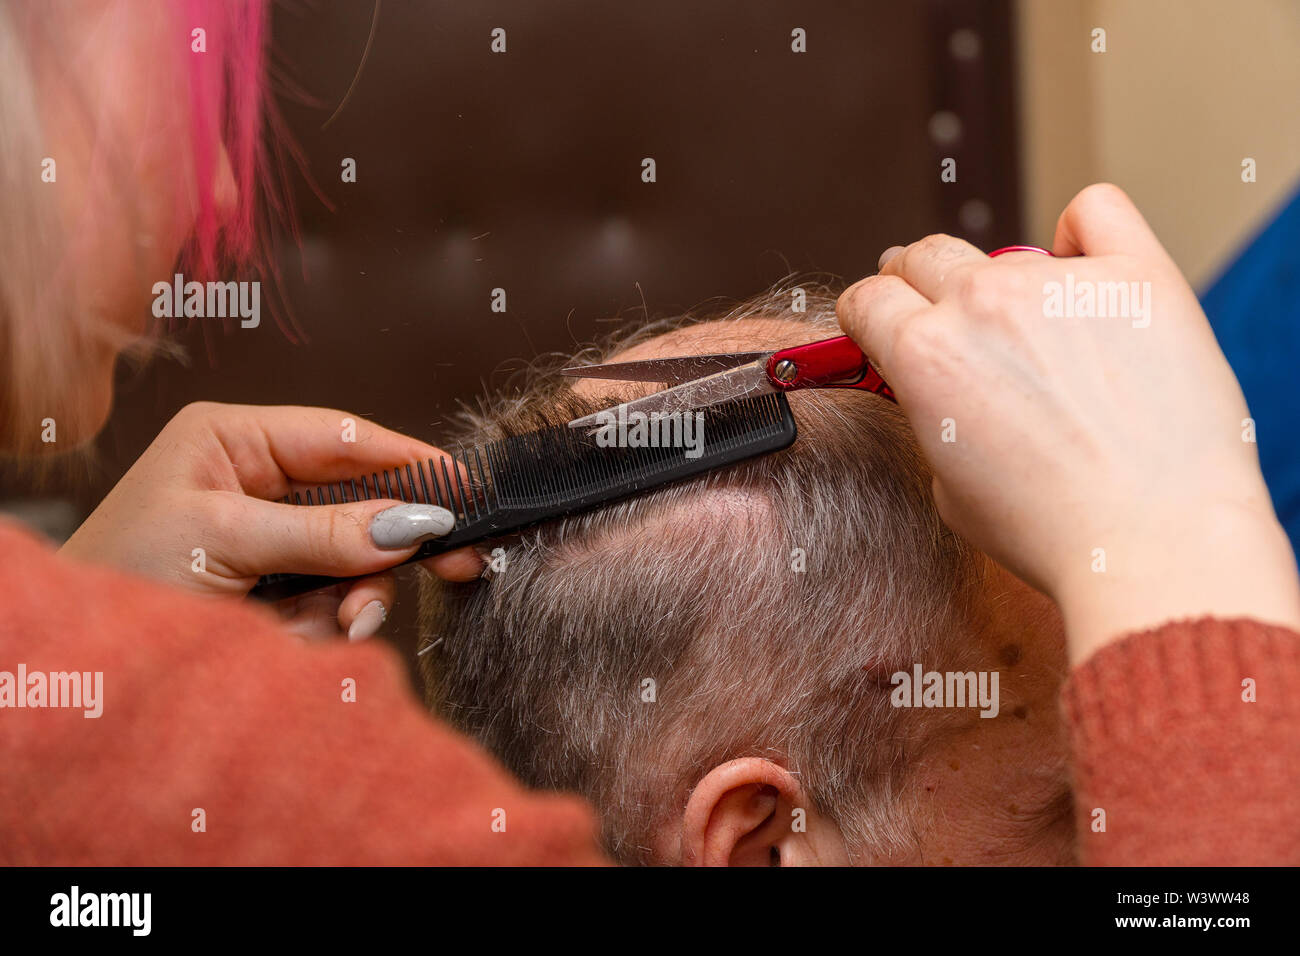 Woman hairdresser cuts a man with a receding hairline with scissors. Selective focus - Stock Image